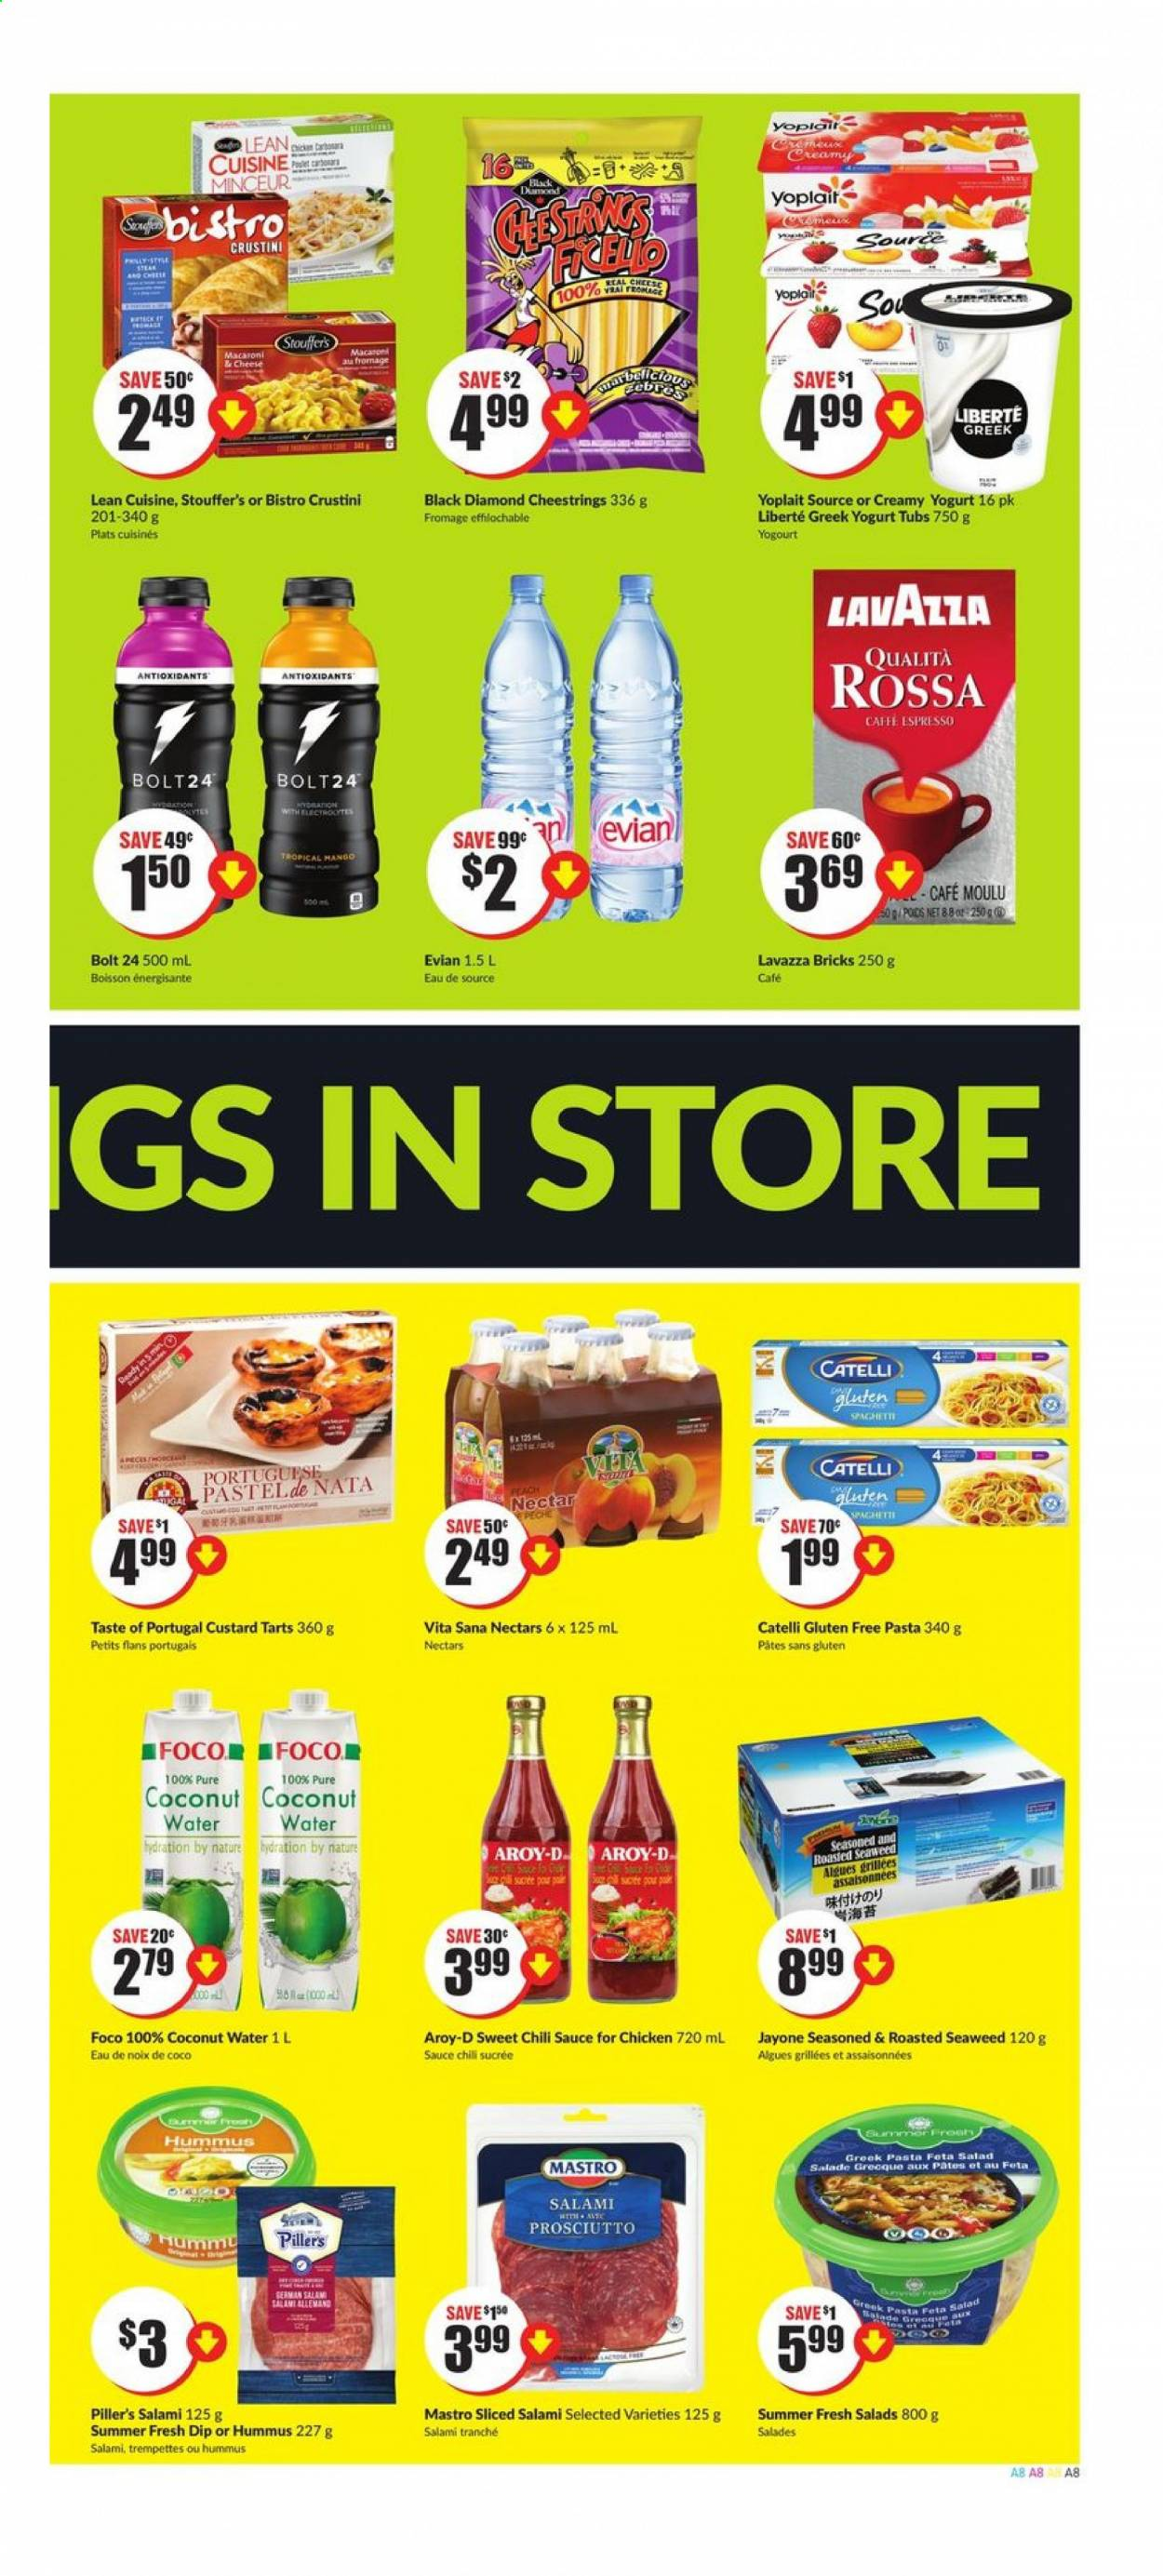 FreshCo. Flyer - July 09, 2020 - July 15, 2020 - Sales products - custard, fêta, greek yogurt, macaroni & cheese, salami, spaghetti, yogurt, hummus, prosciutto, chicken, chili sauce, seaweed, cheese, coconut, macaroni, pasta, salad, sauce, café, salade, algues, boisson, café moulu, eau, fromage, noix, noix de coco, pêche, lavazza, pâtes, nectar, gluten free. Page 8.